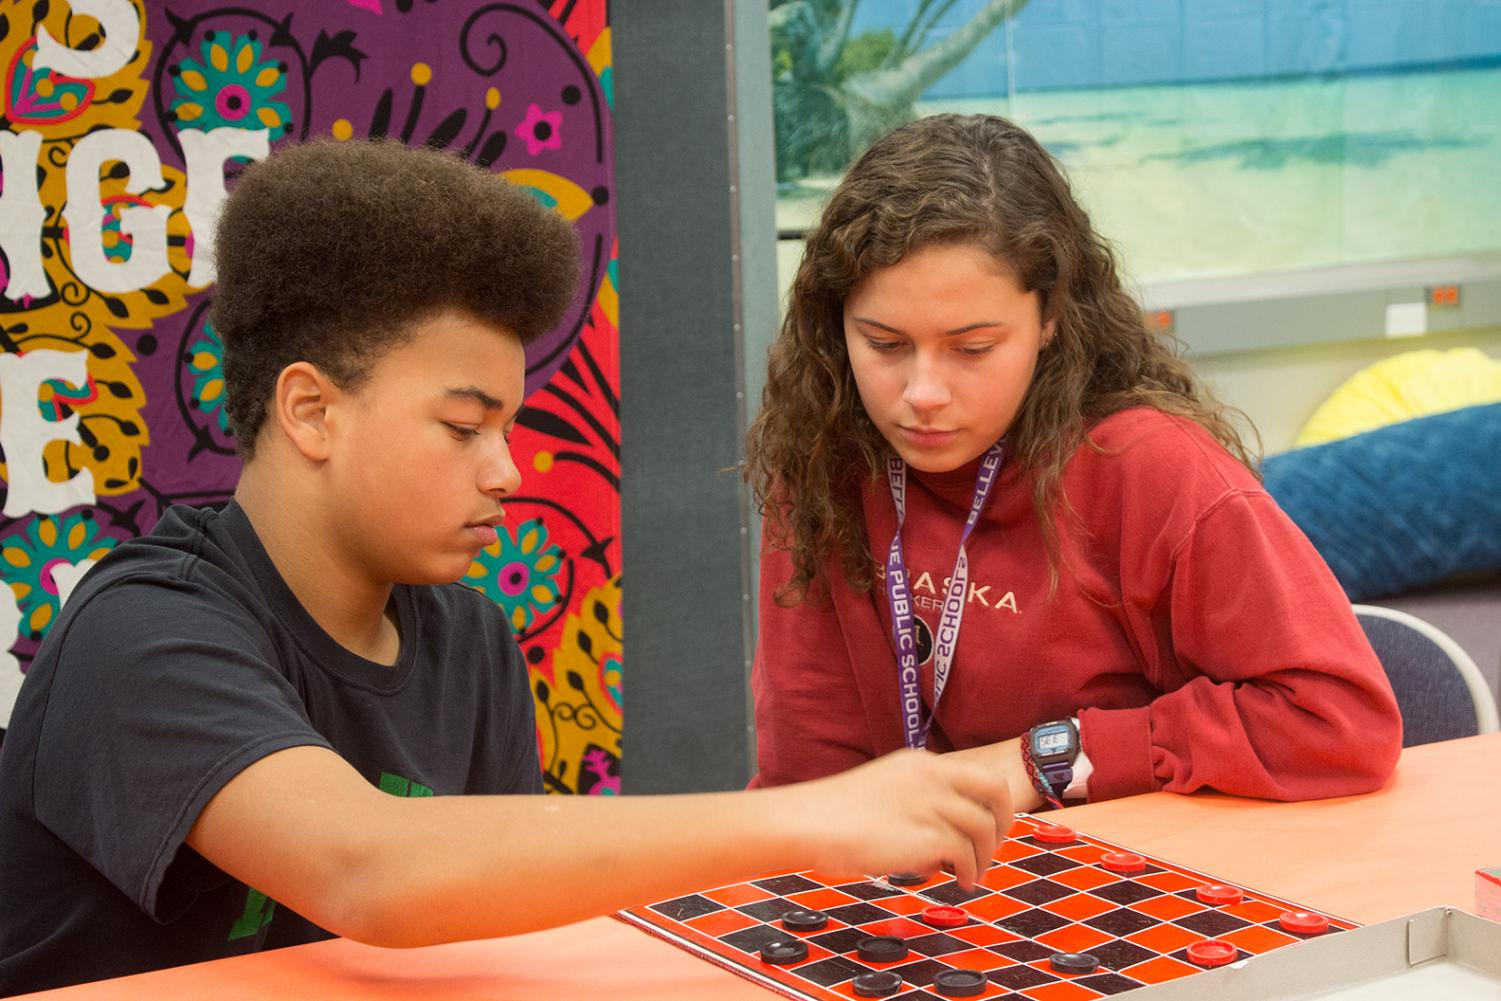 Senior Trinity Torres and eighth grader Jordan Jacobs play a friendly game of chess to get to know each other better.